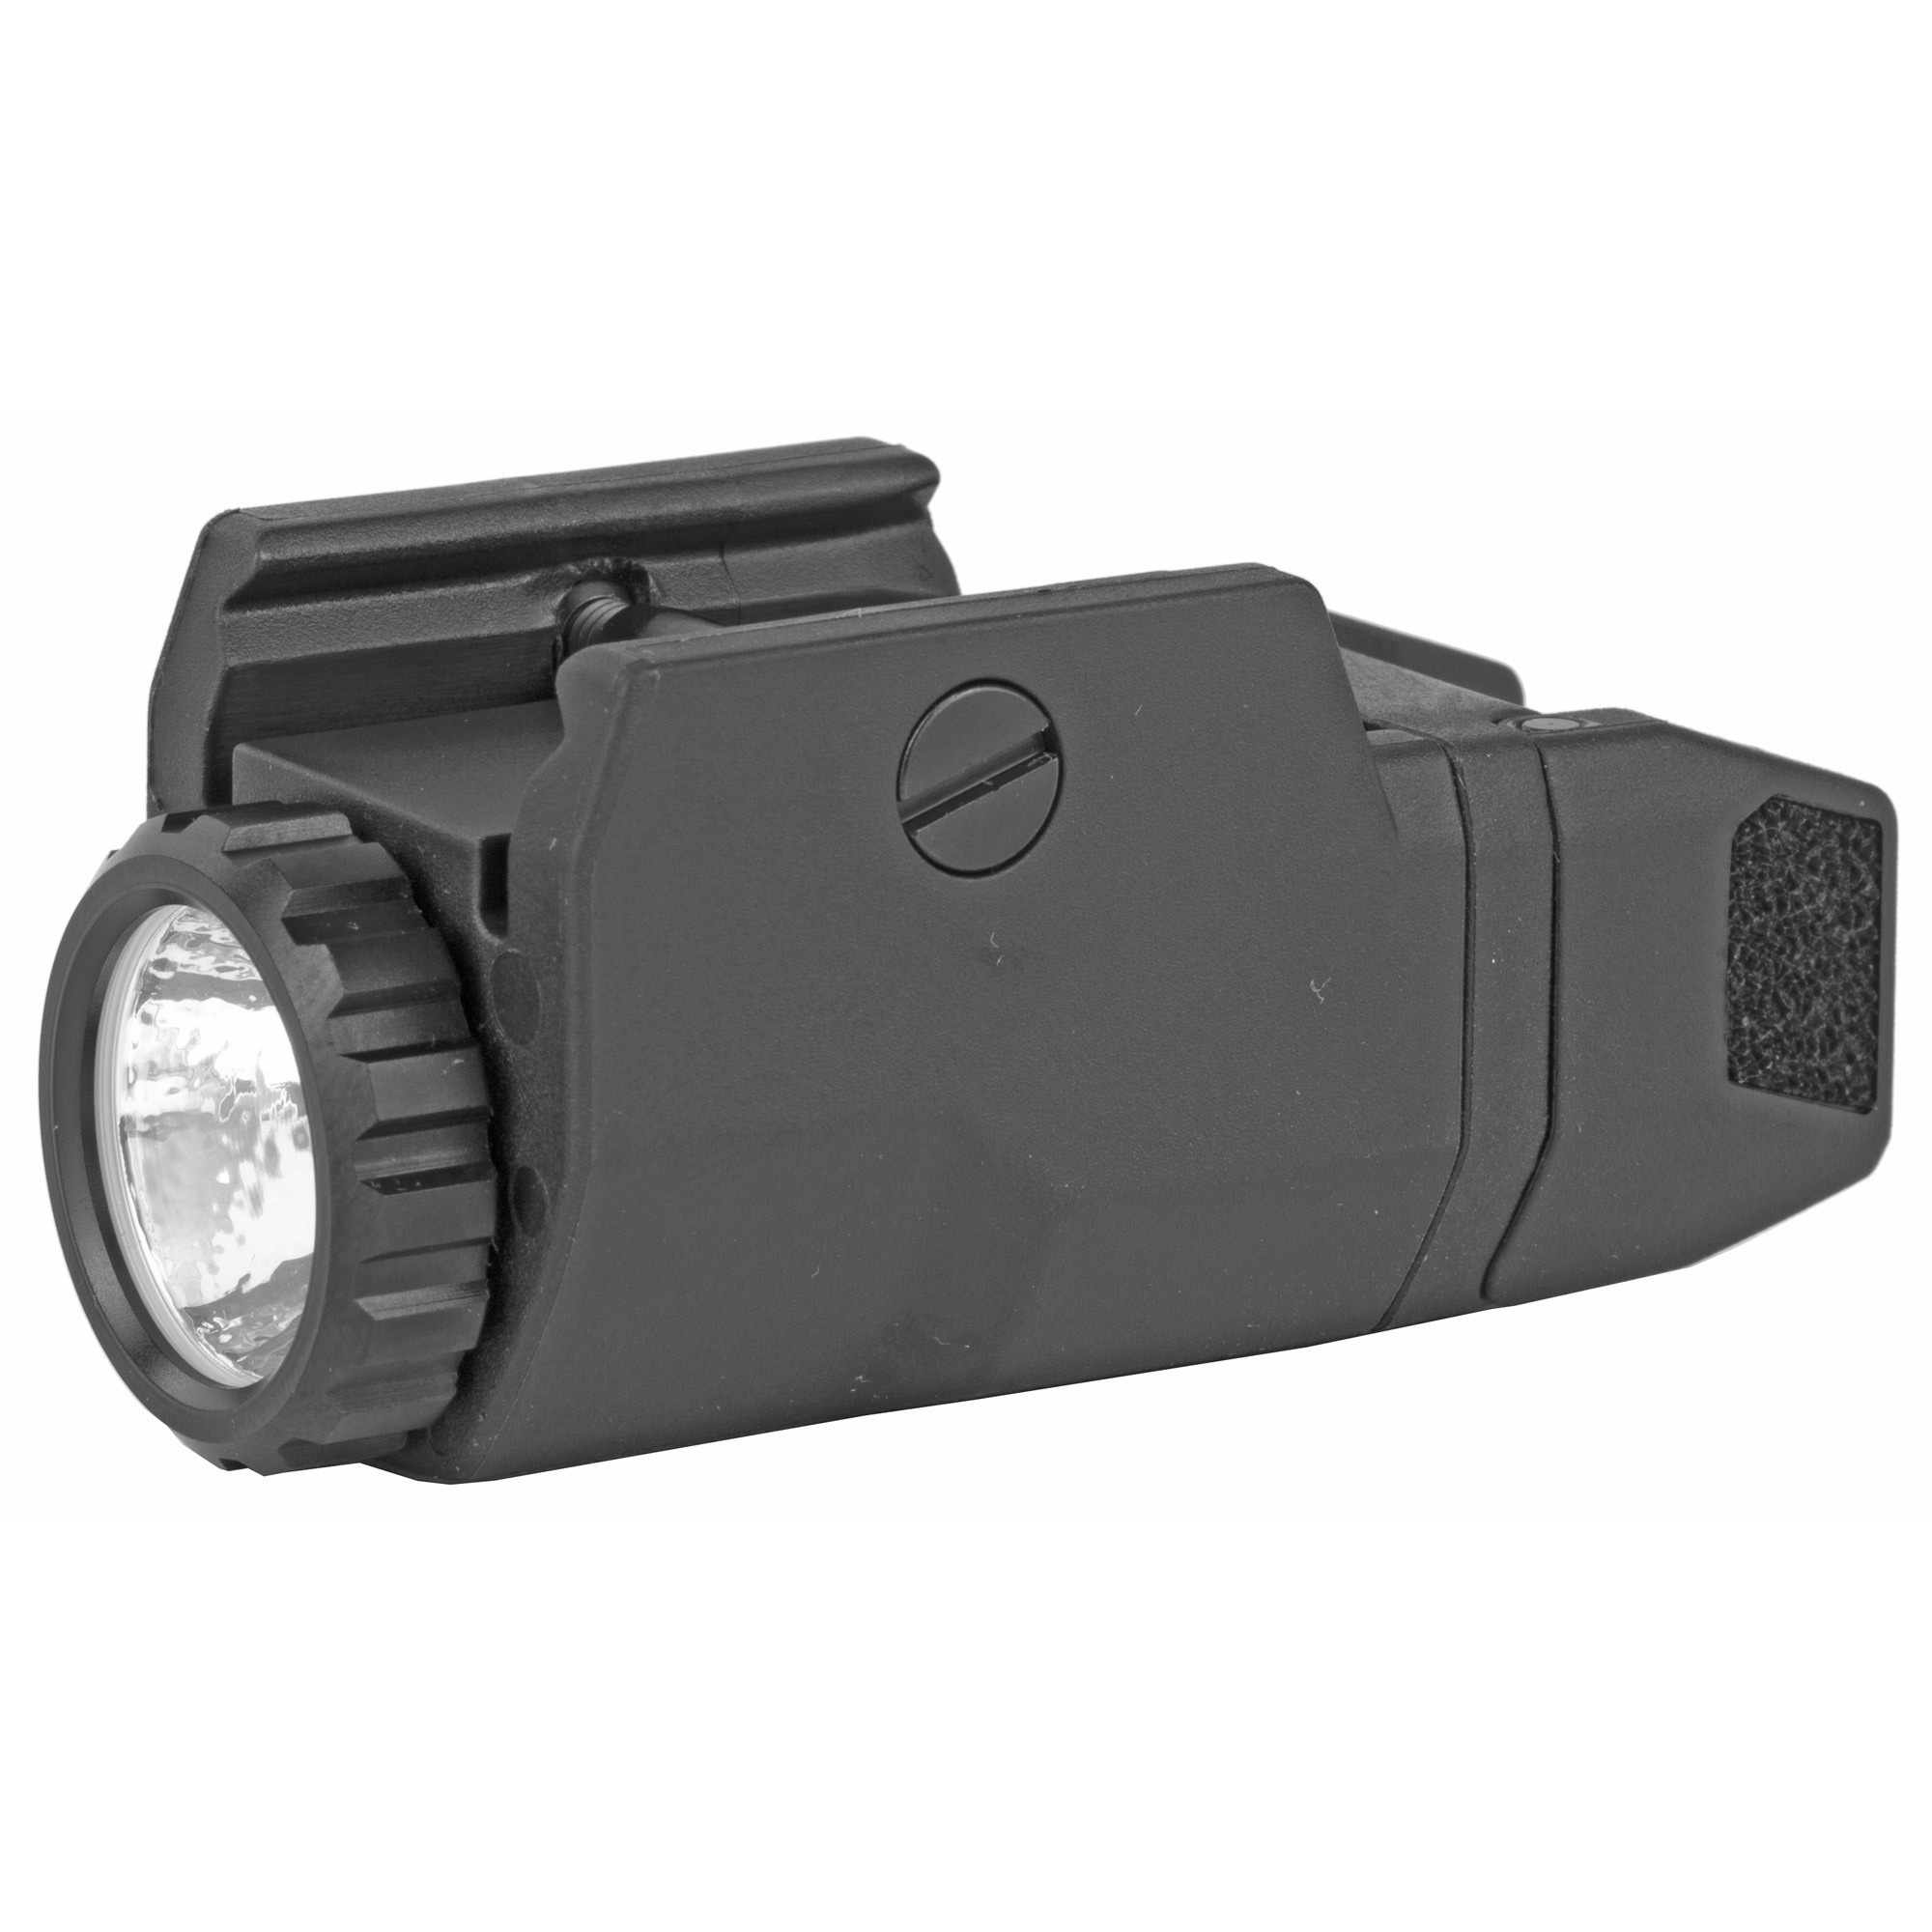 Inforce INFORCE APLC 1913 LIGHT